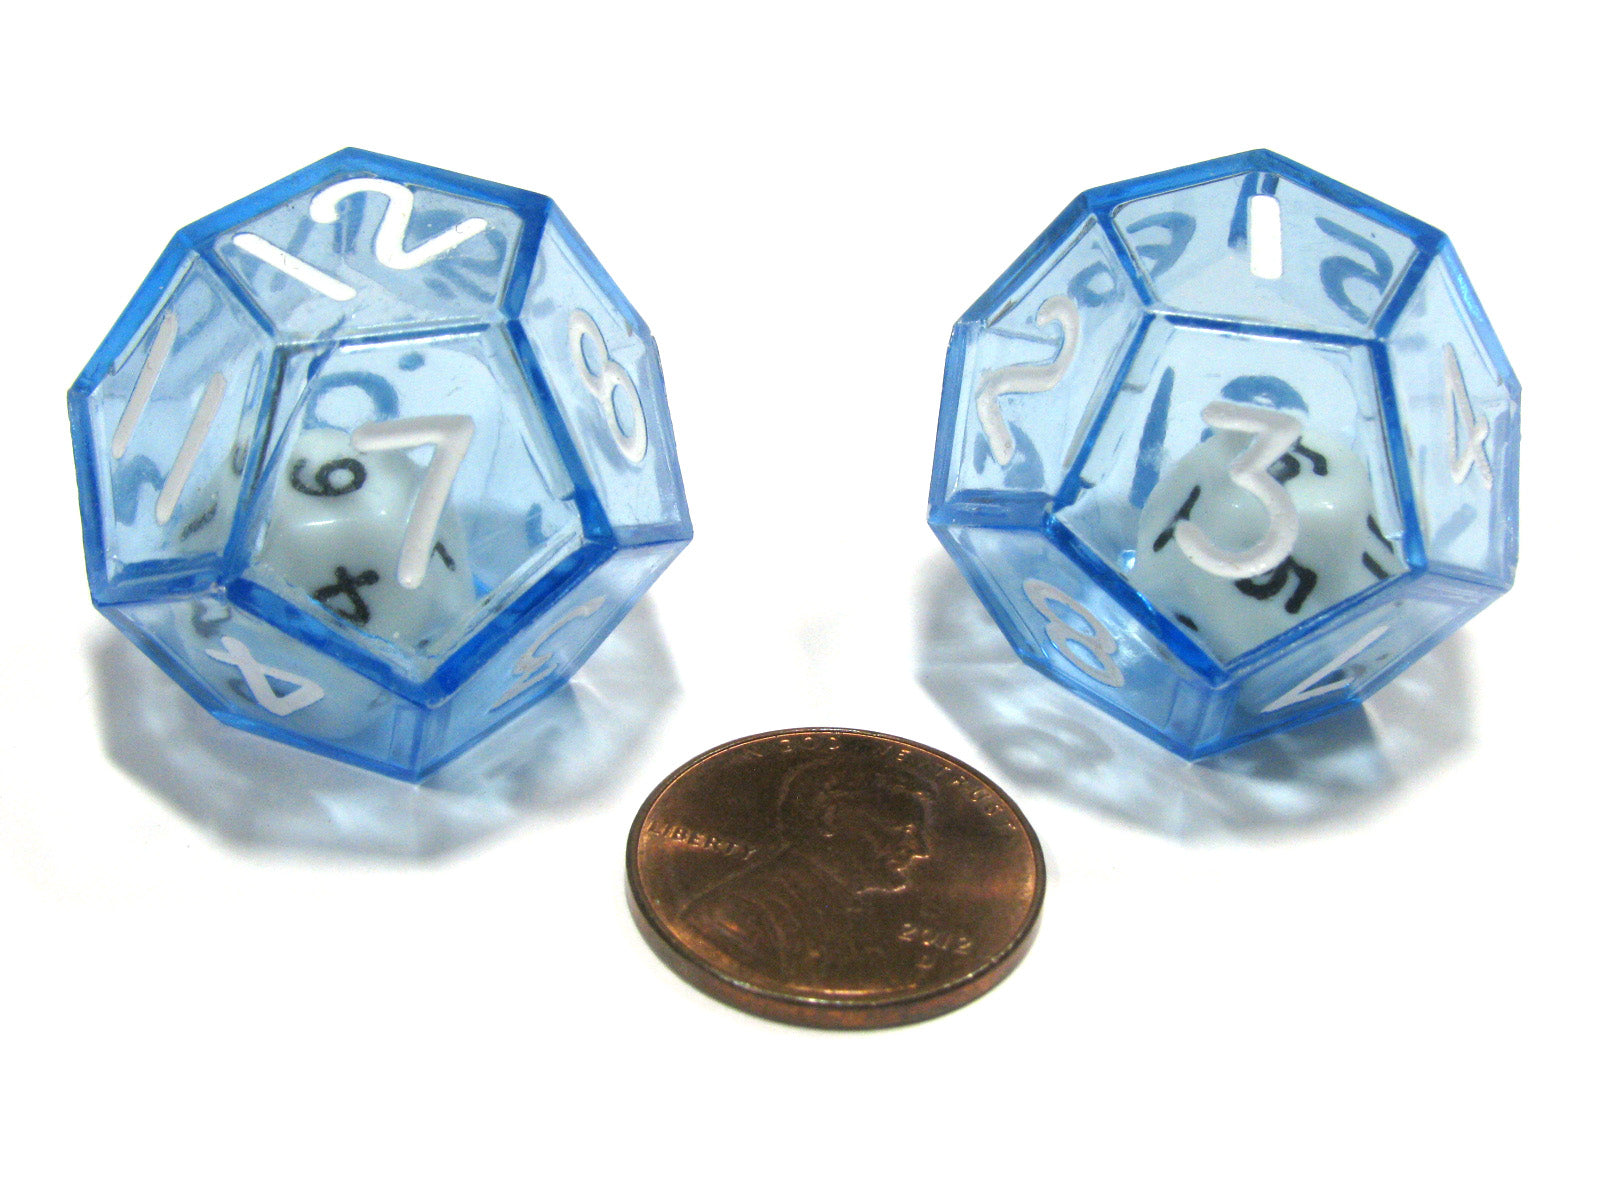 Set of 2 D12 25mm Double Dice, 2-In-1 Dice - White Inside Translucent Blue Die